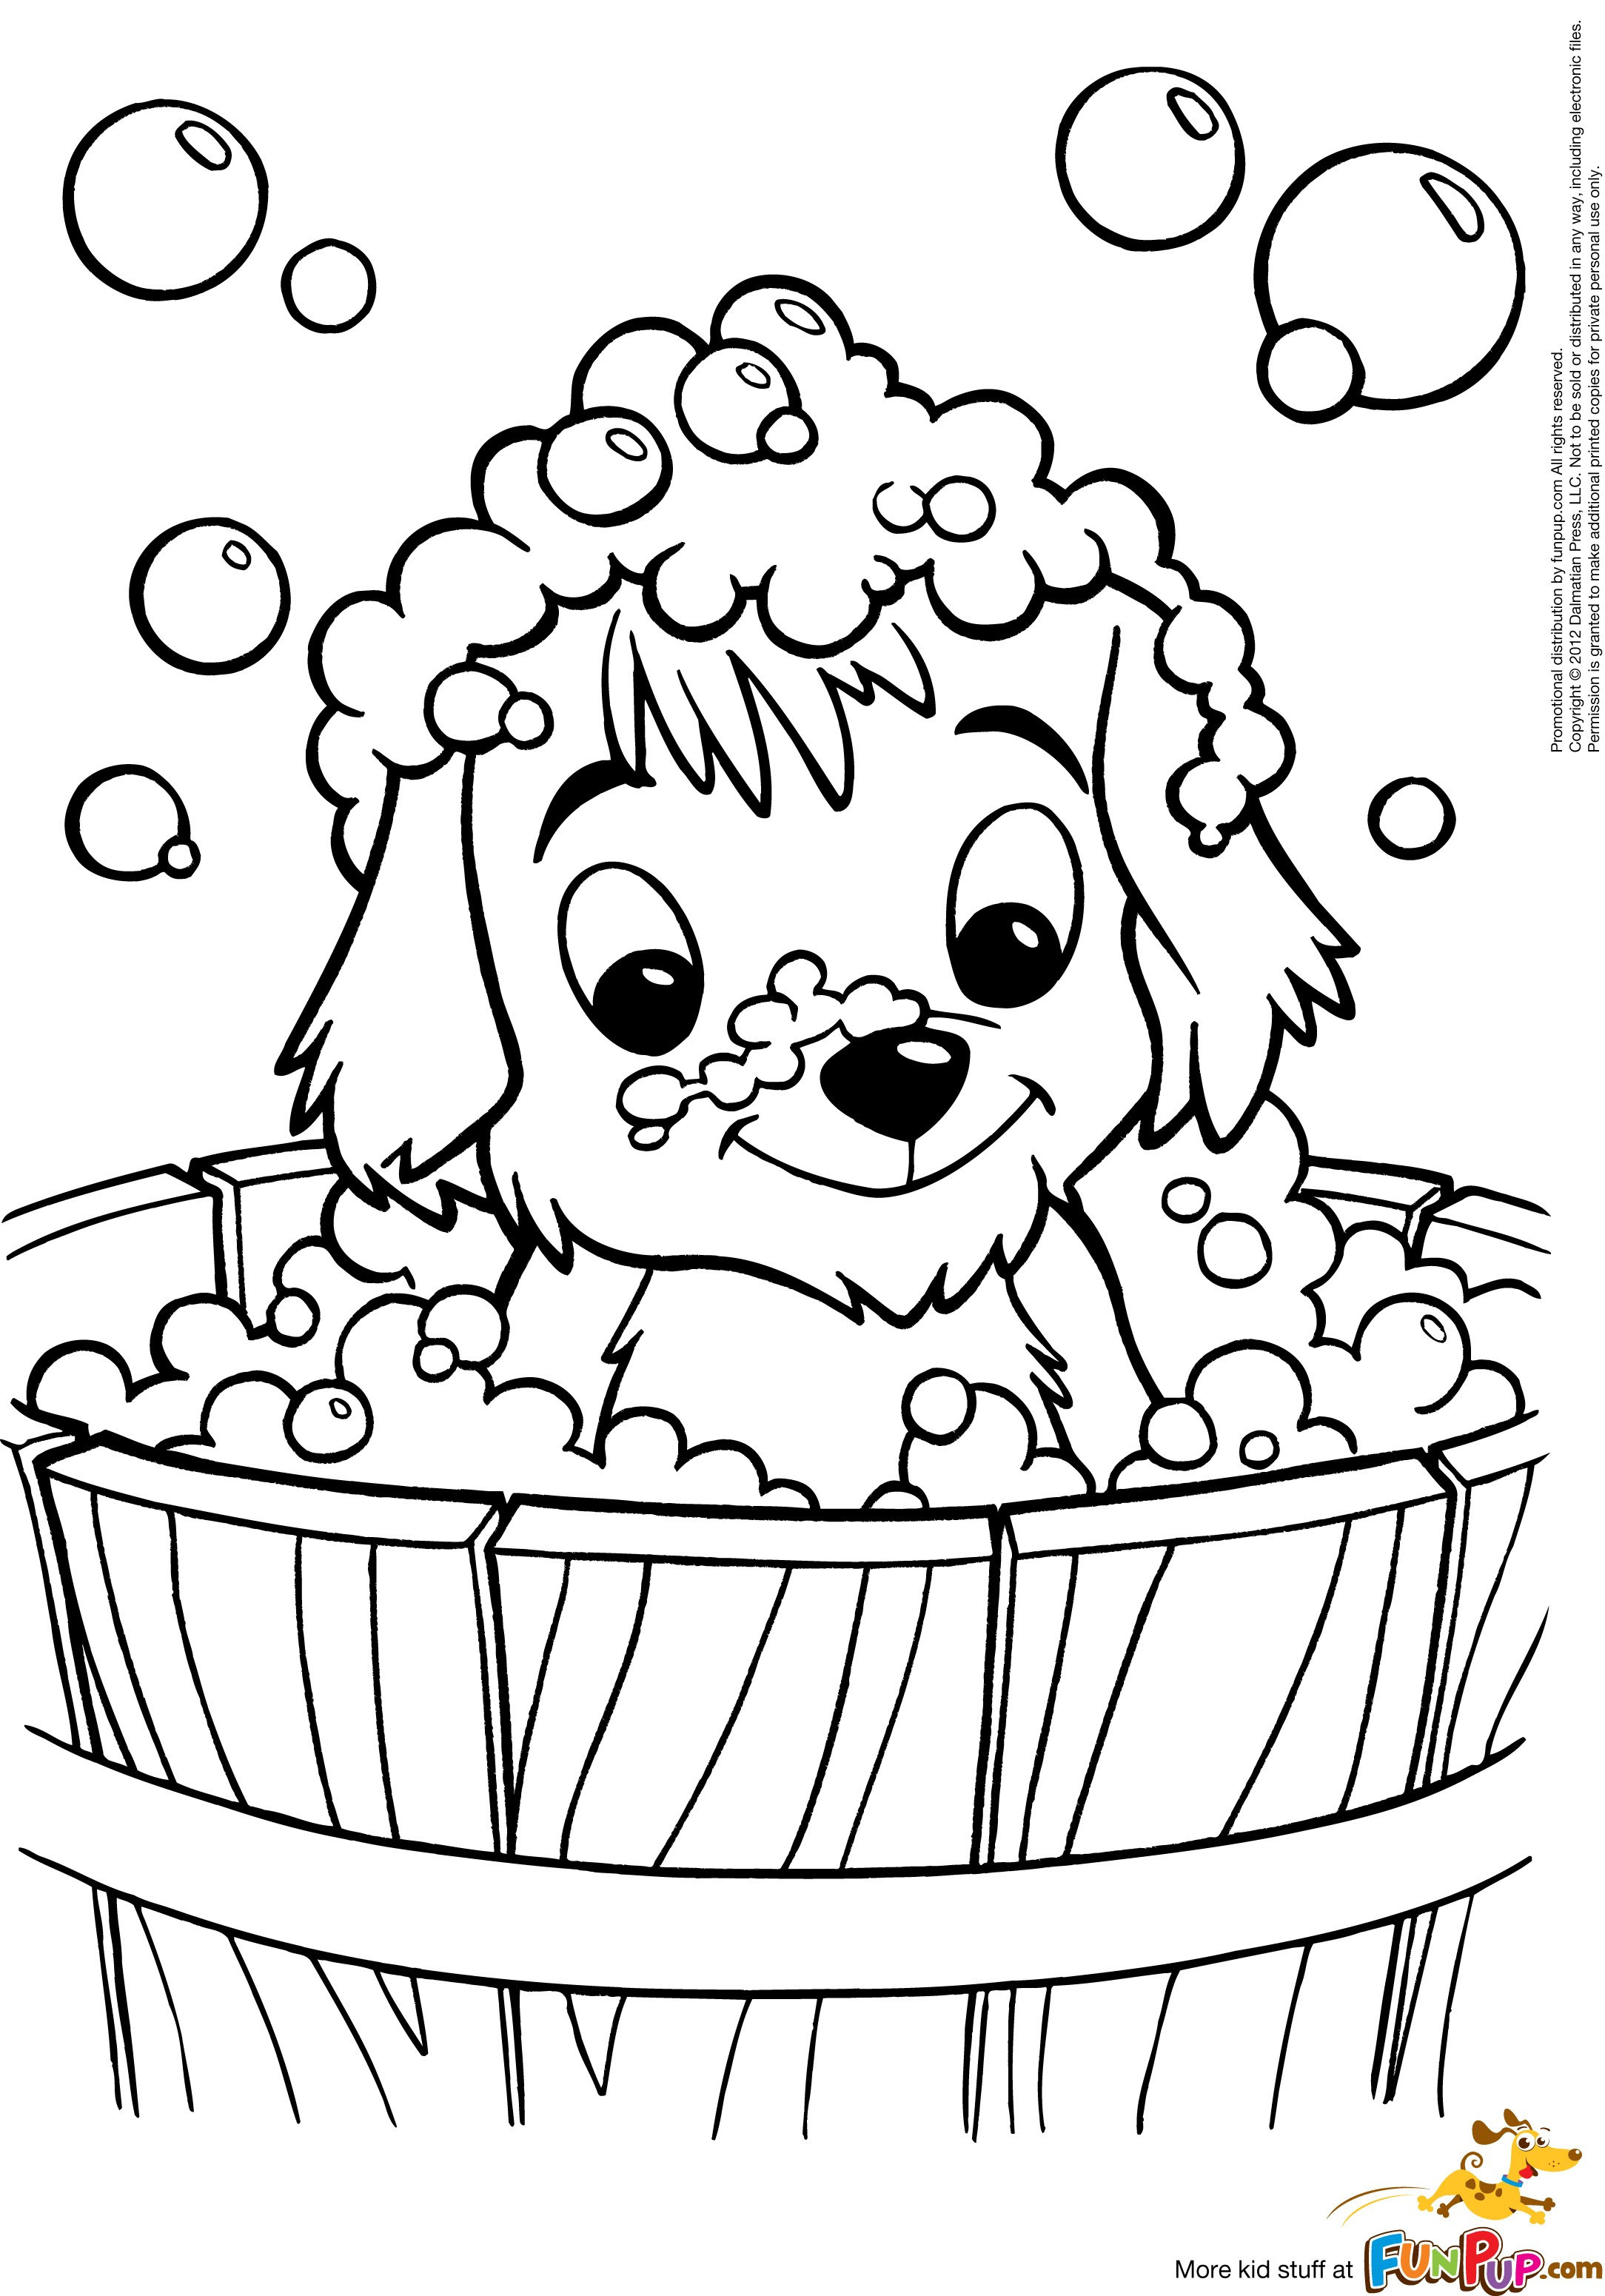 Puppy Love Coloring Pages at GetColorings.com | Free ...